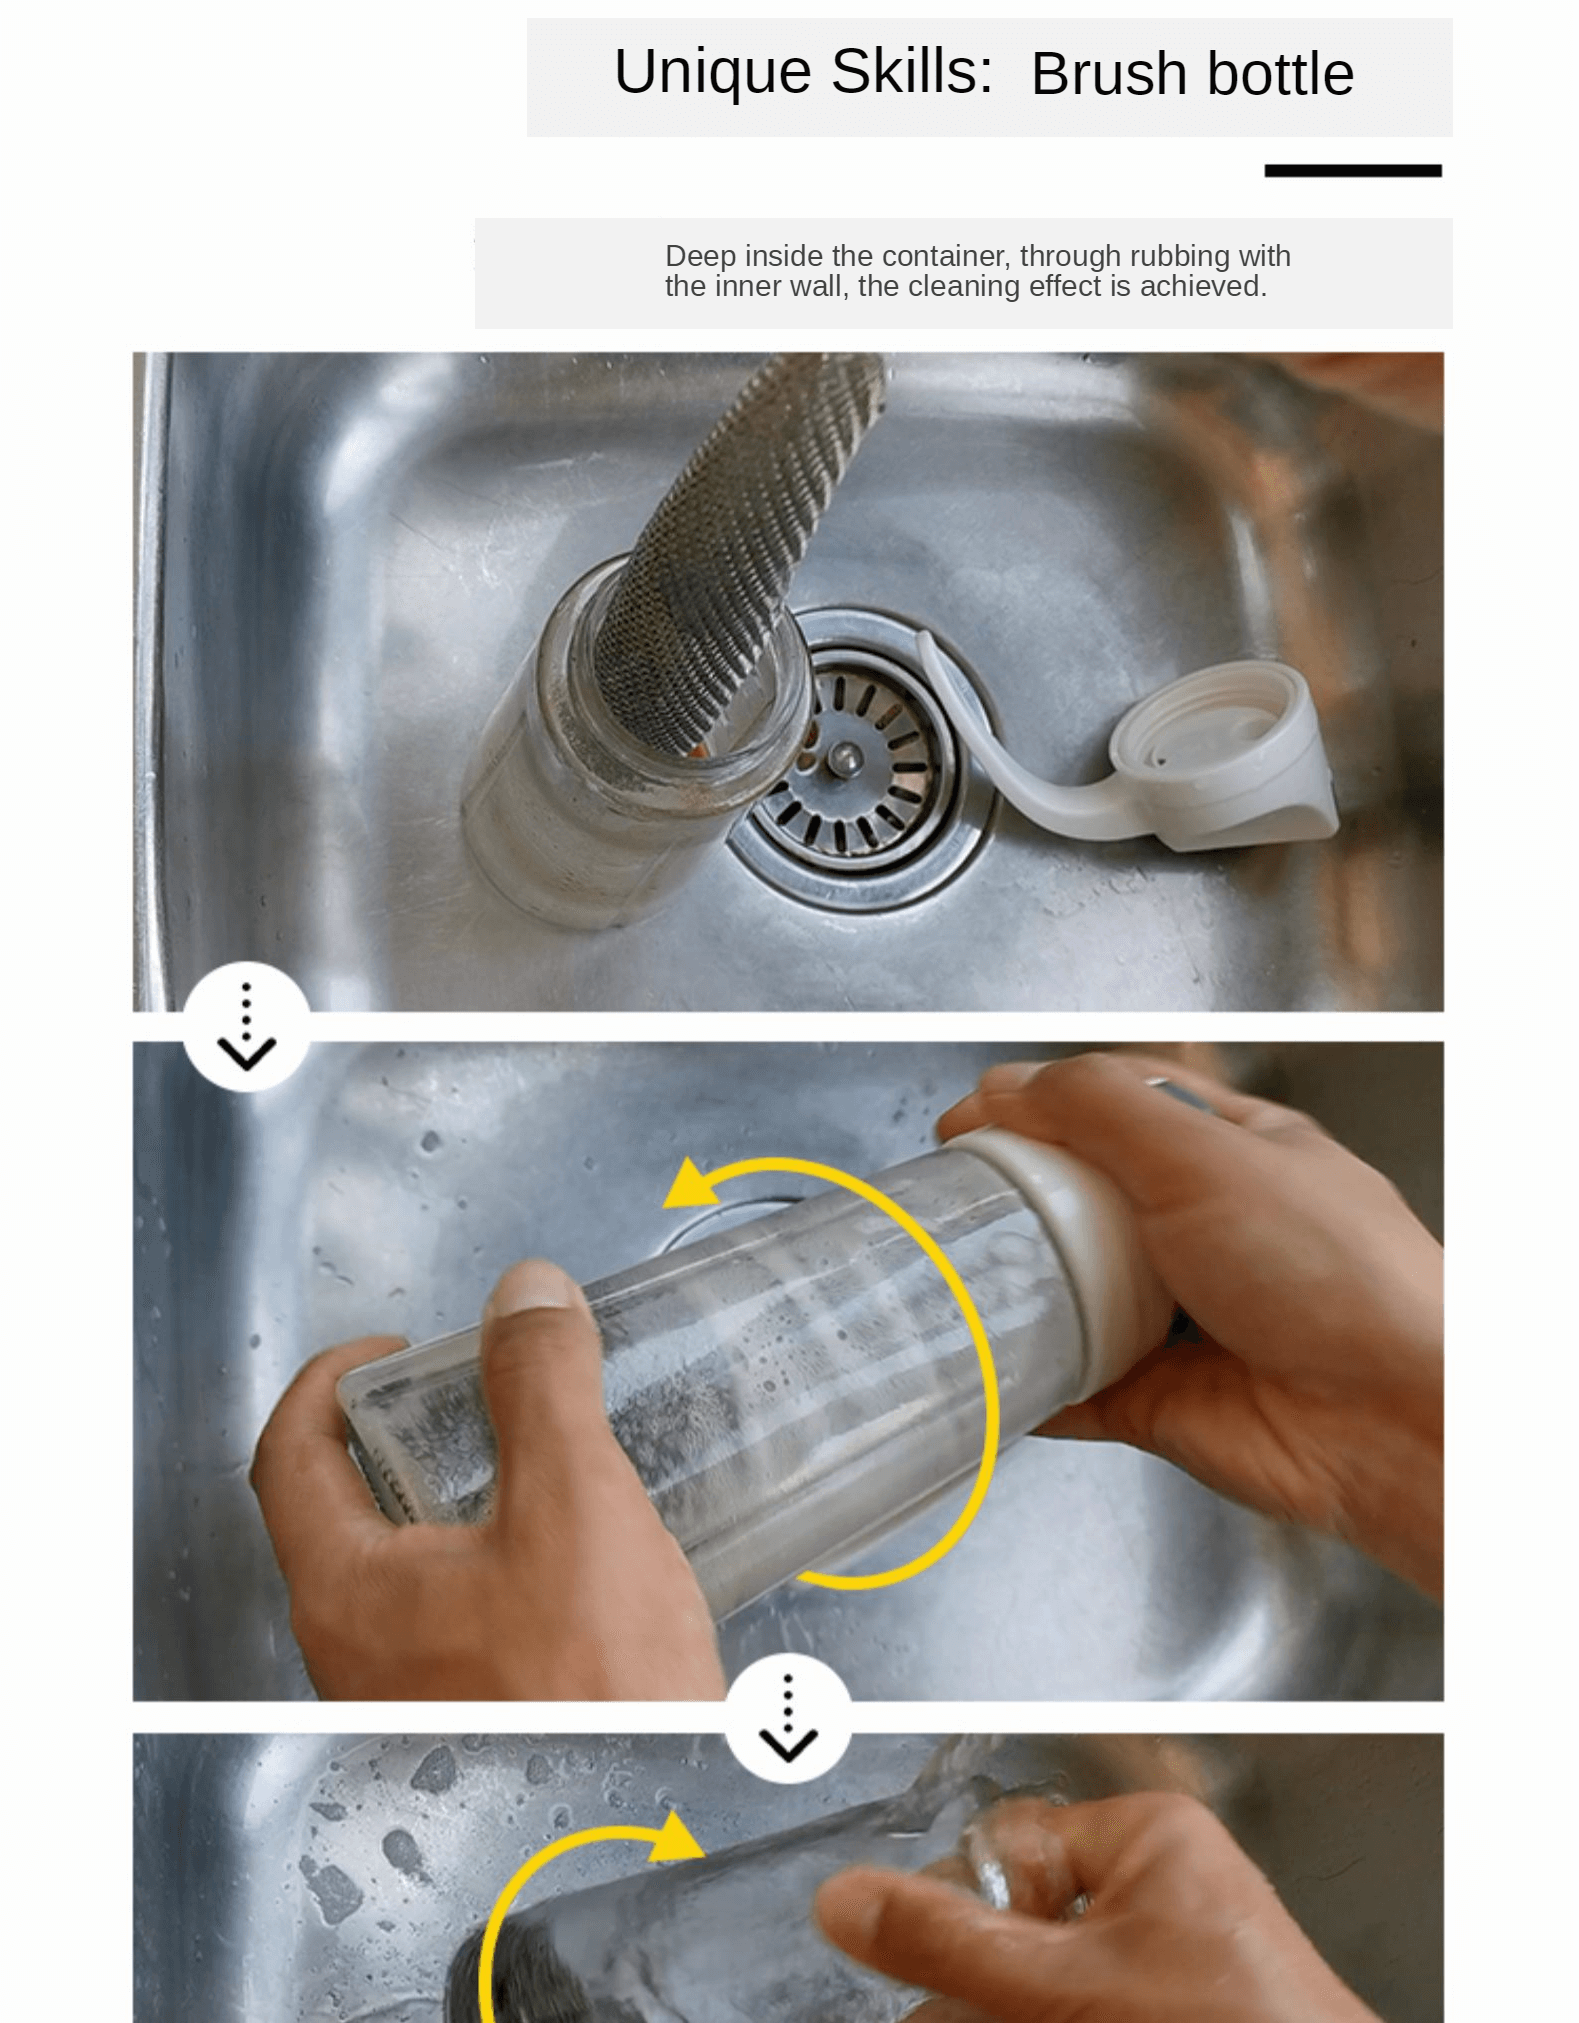 Super Fine Ring Stainless Steel Kitchen To Remove Stains Washing Pot Net Life Assistantxzs In 2020 Stainless Steel Kitchen Stain Remover Steel